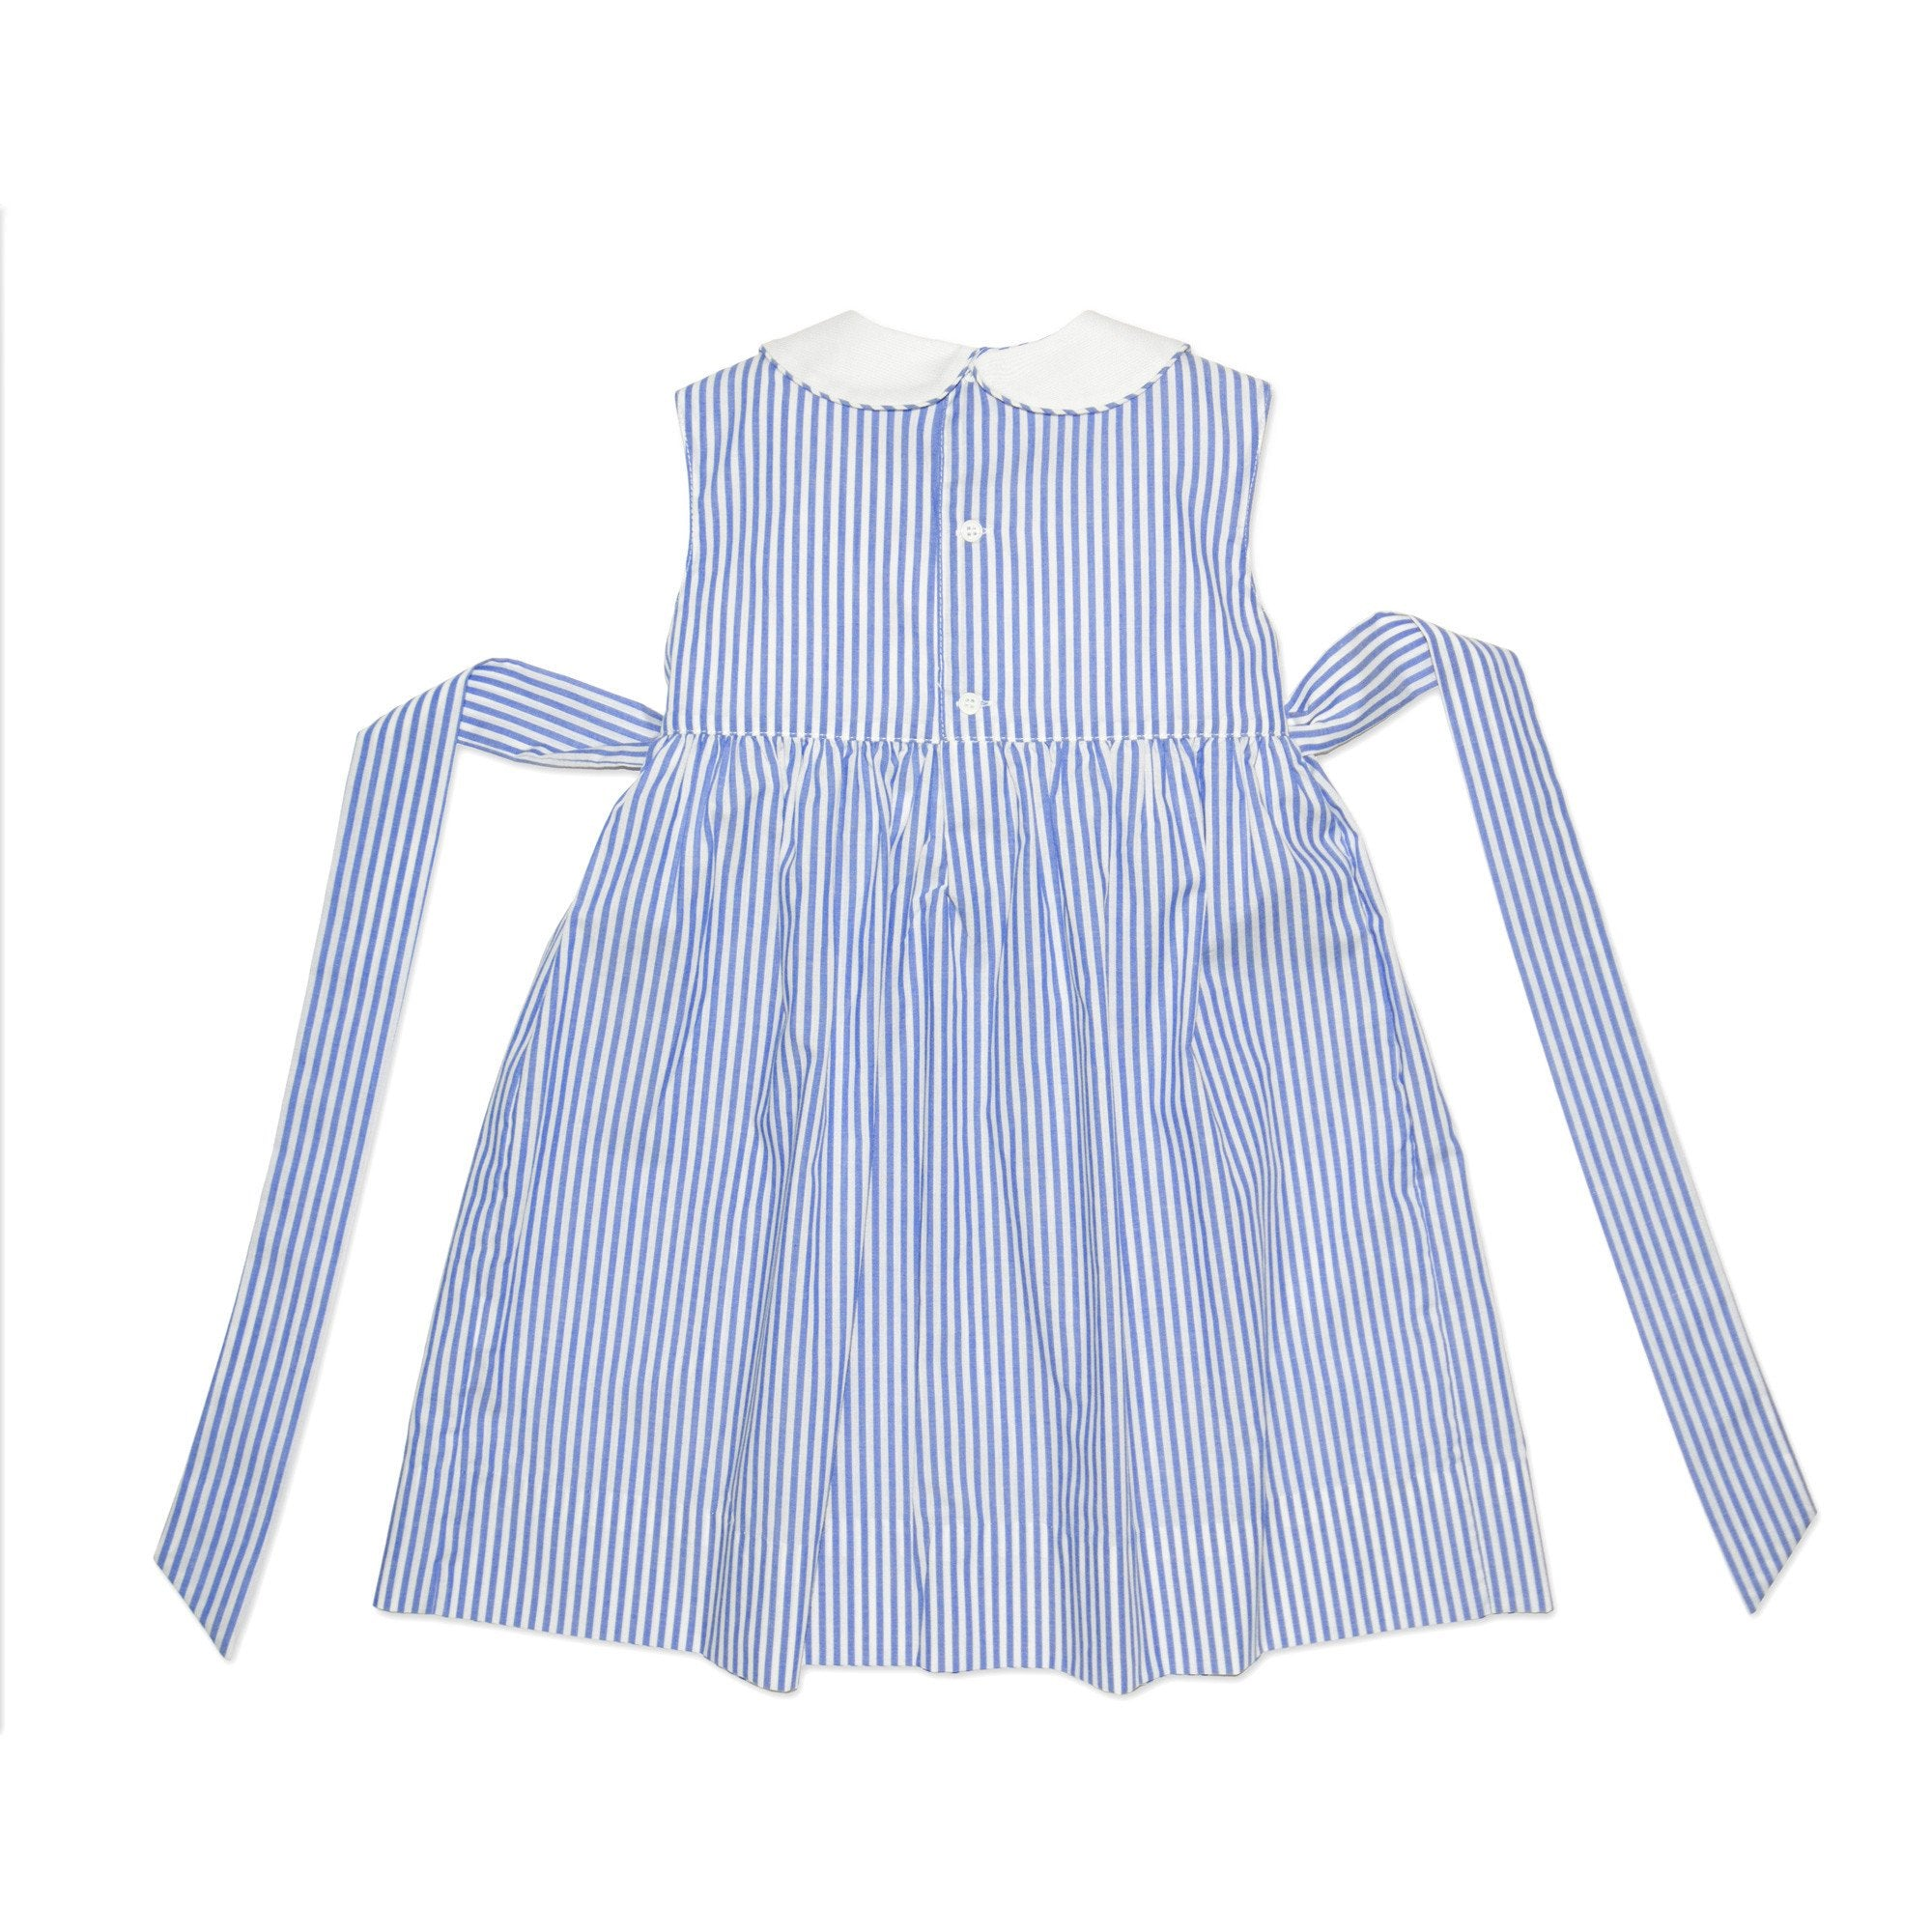 BELLA PIN STRIPE SAILBOAT SMOCK DRESS